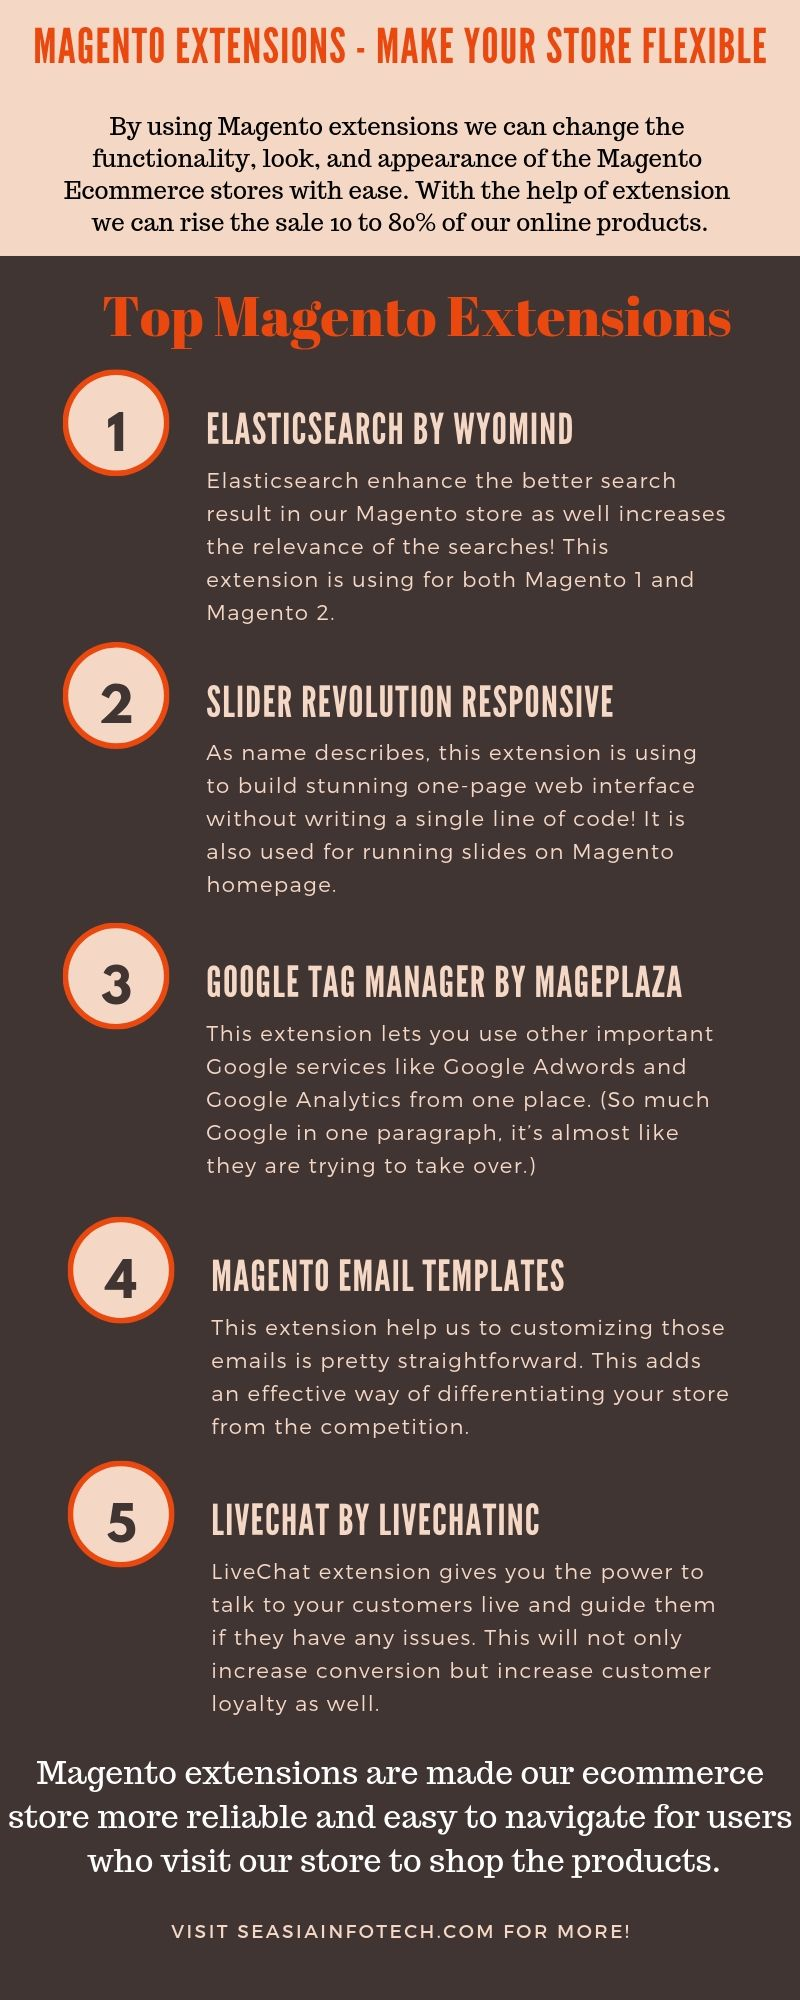 Every Magento extension have their different features